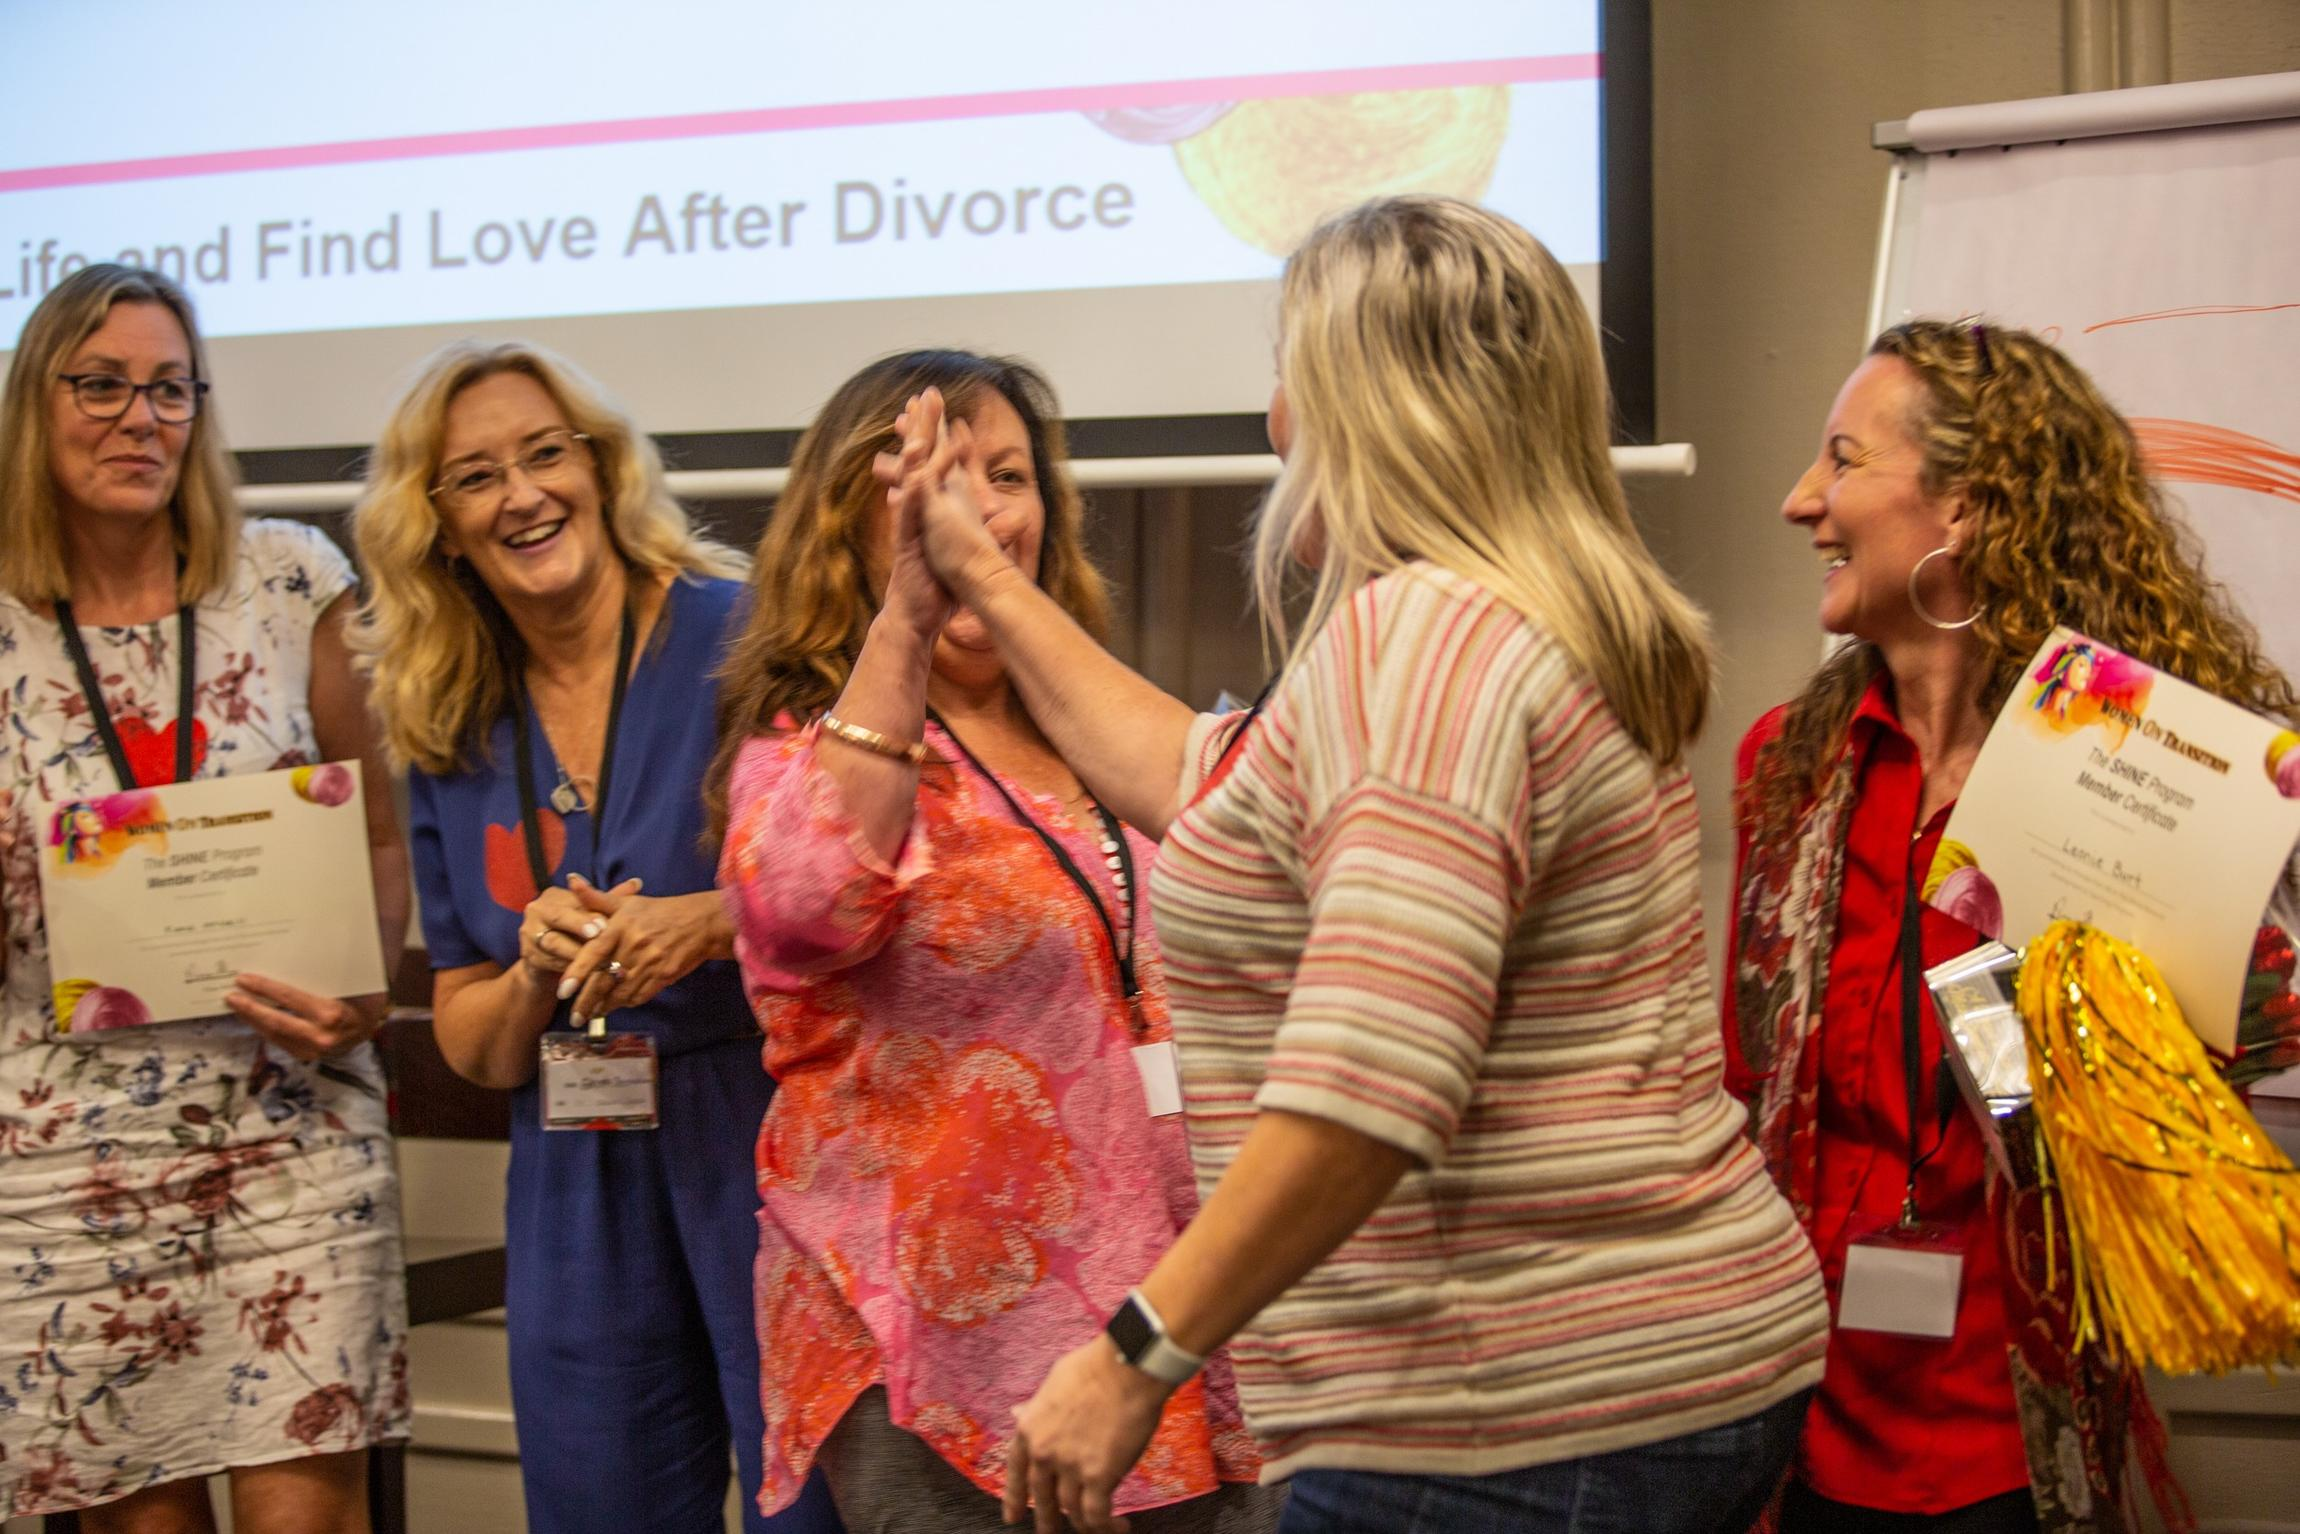 Reset Your Life And Find Love After Divorce 3 Day Free Event For Women When is the right time? and shine after divorce